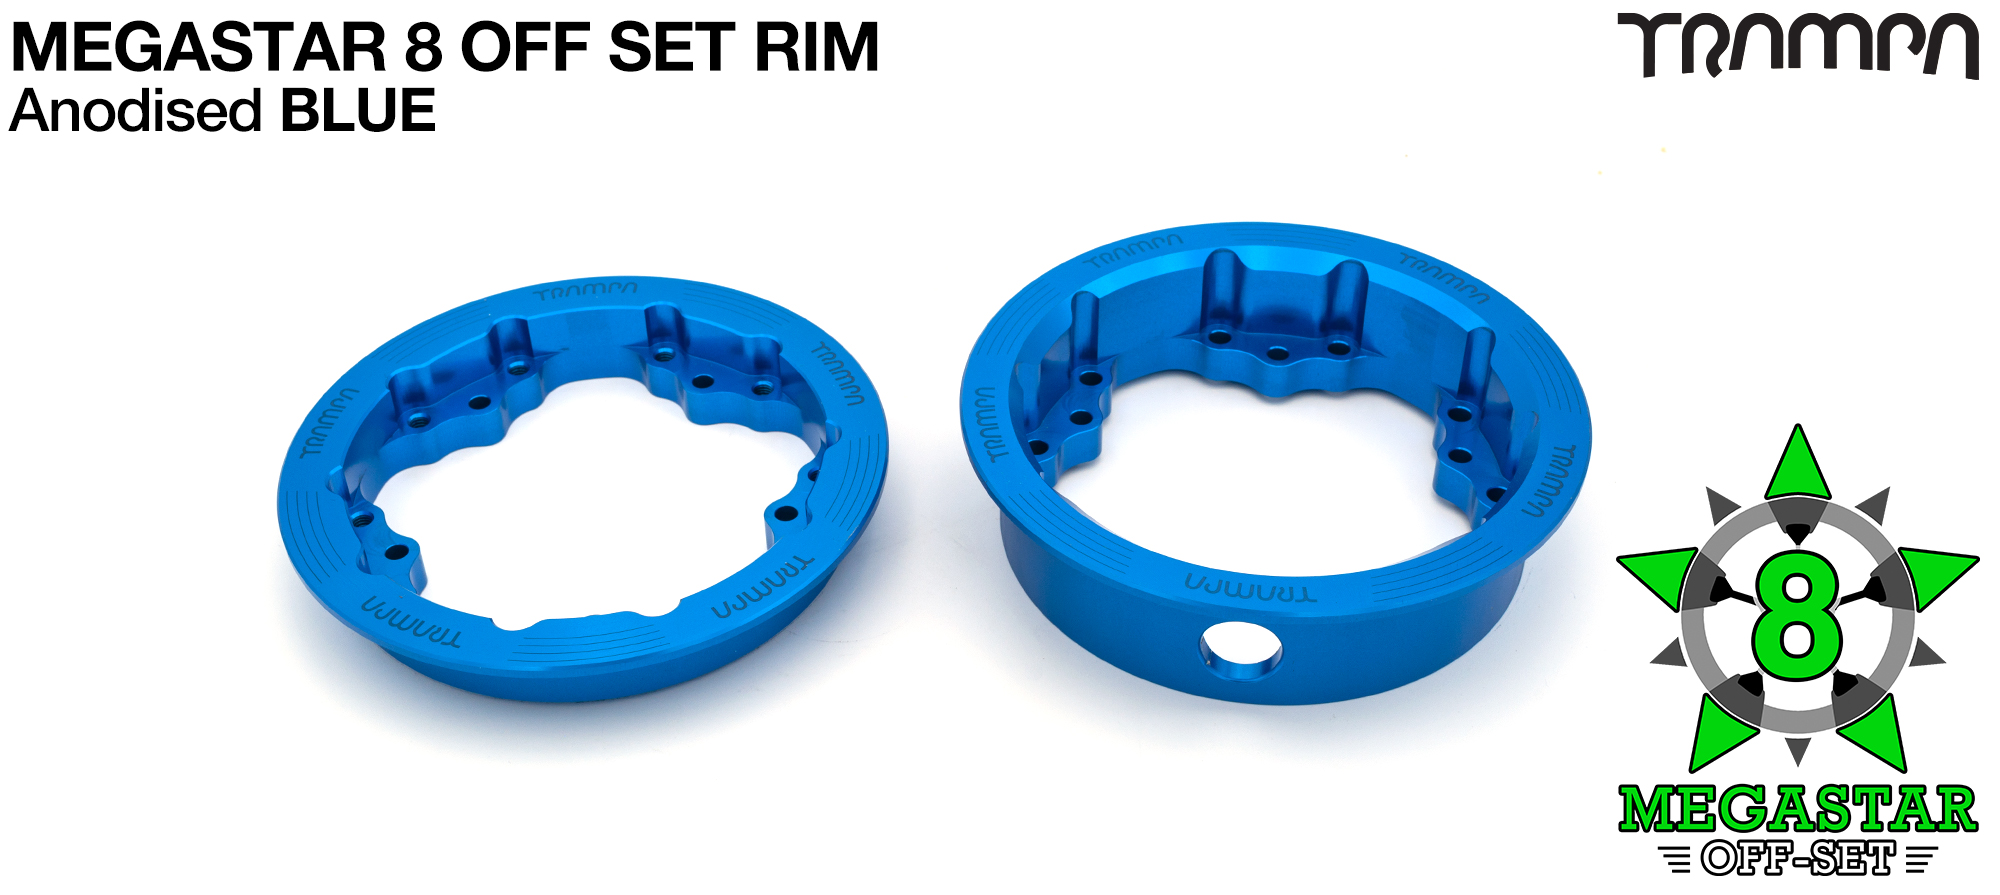 CENTER-SET 8 inch MEGASTAR Rims - BLUE